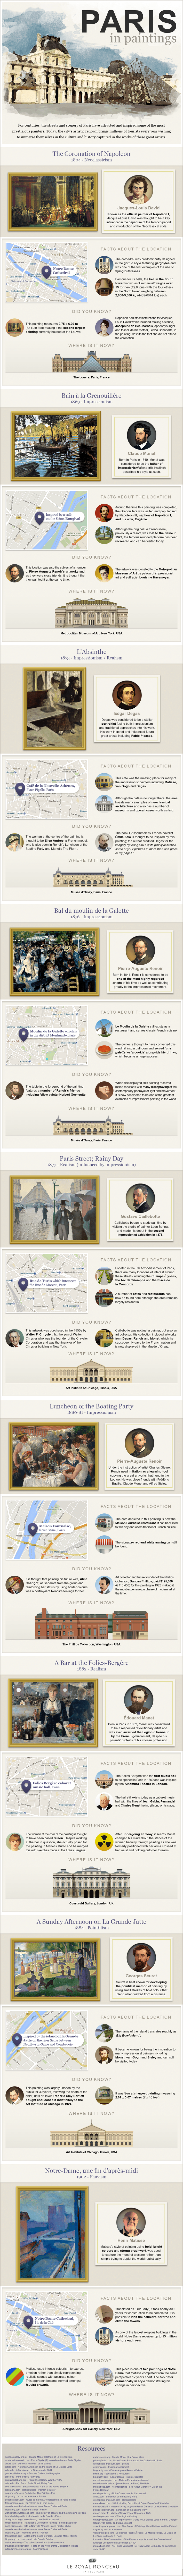 Paris in Paintings - Art Infographic